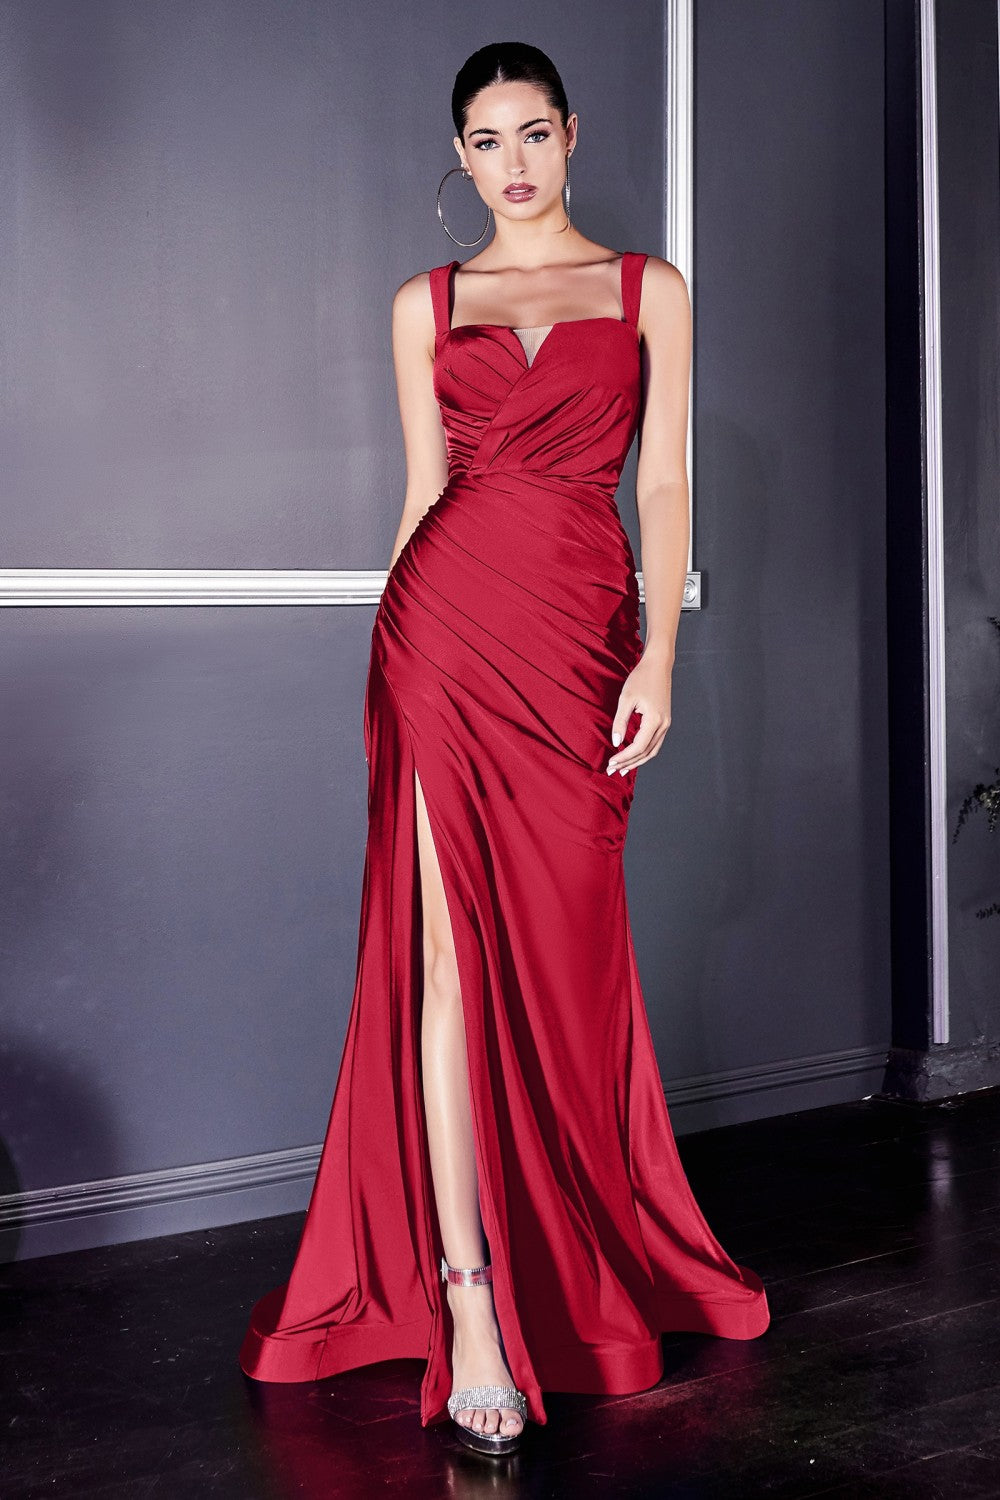 CD CD941C - Plus Size Stretch Satin Fit & Flare Prom Gown with Illusion Bateau Neck Ruched Waist & Leg Slit - Diggz Prom